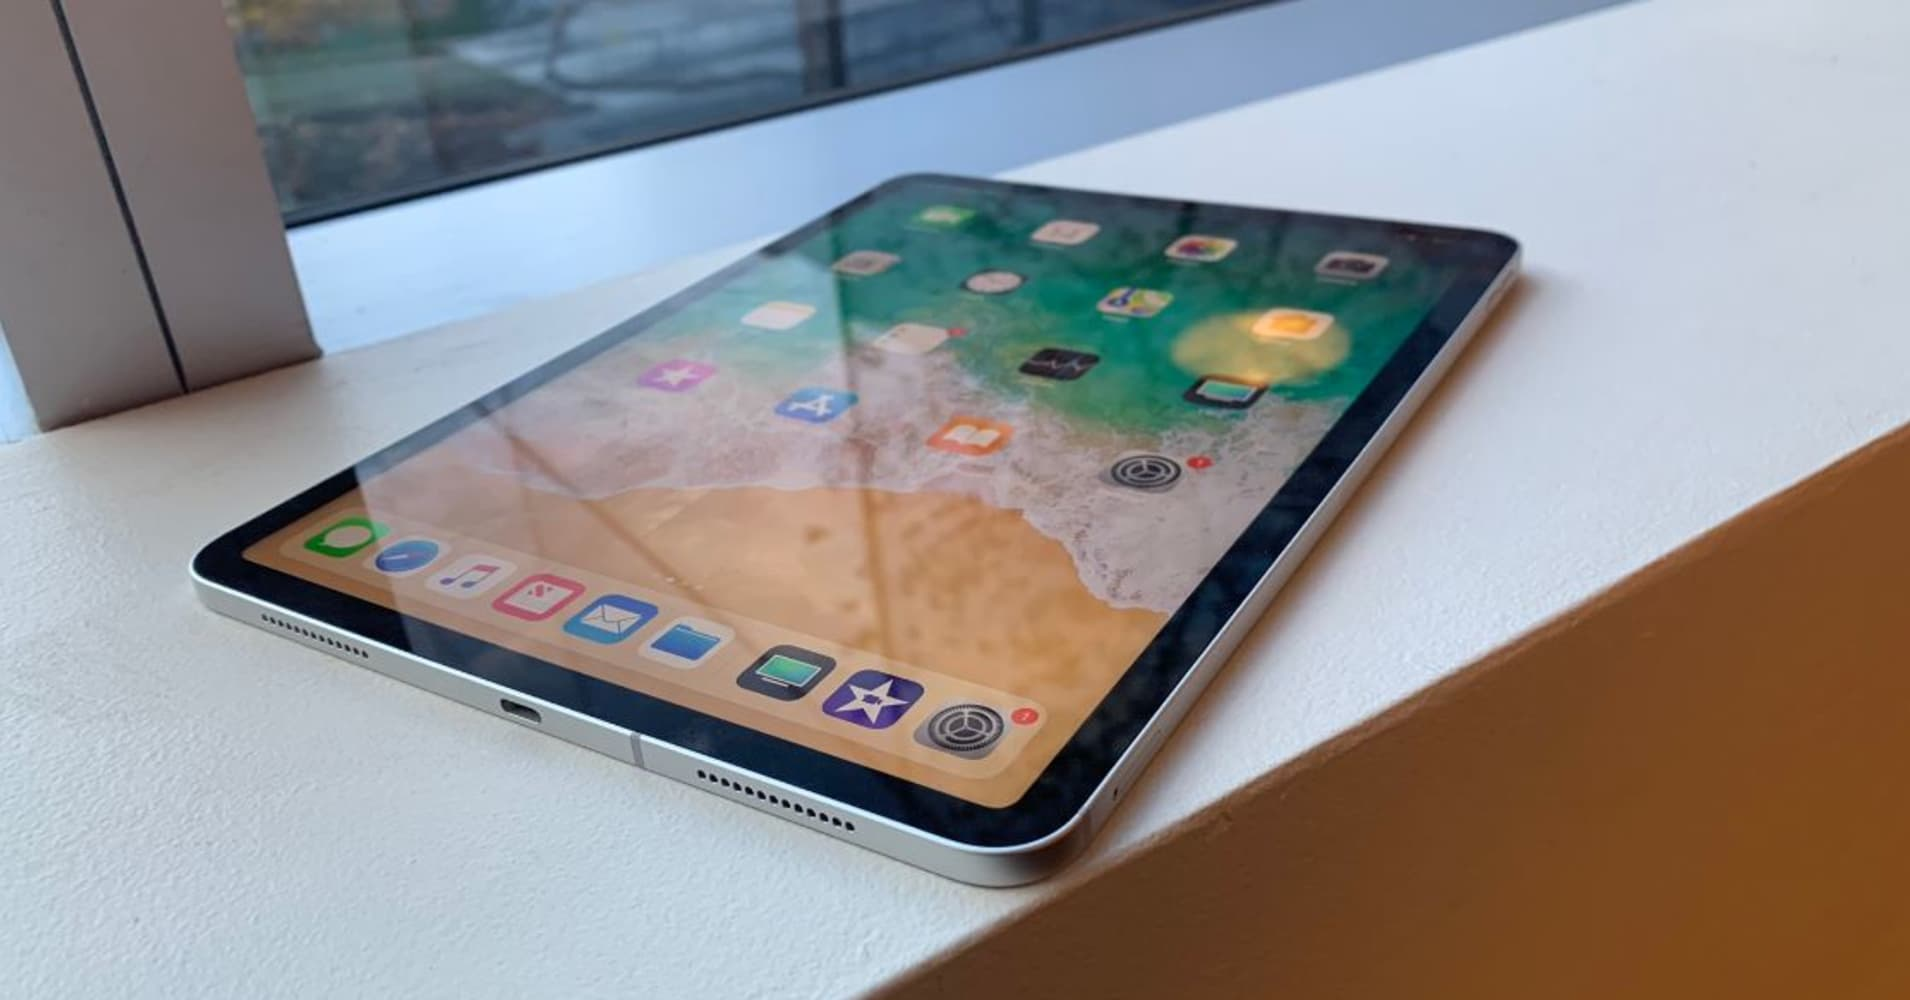 I tested the new iPad Pro and it still can't replace my laptop like Apple says it can